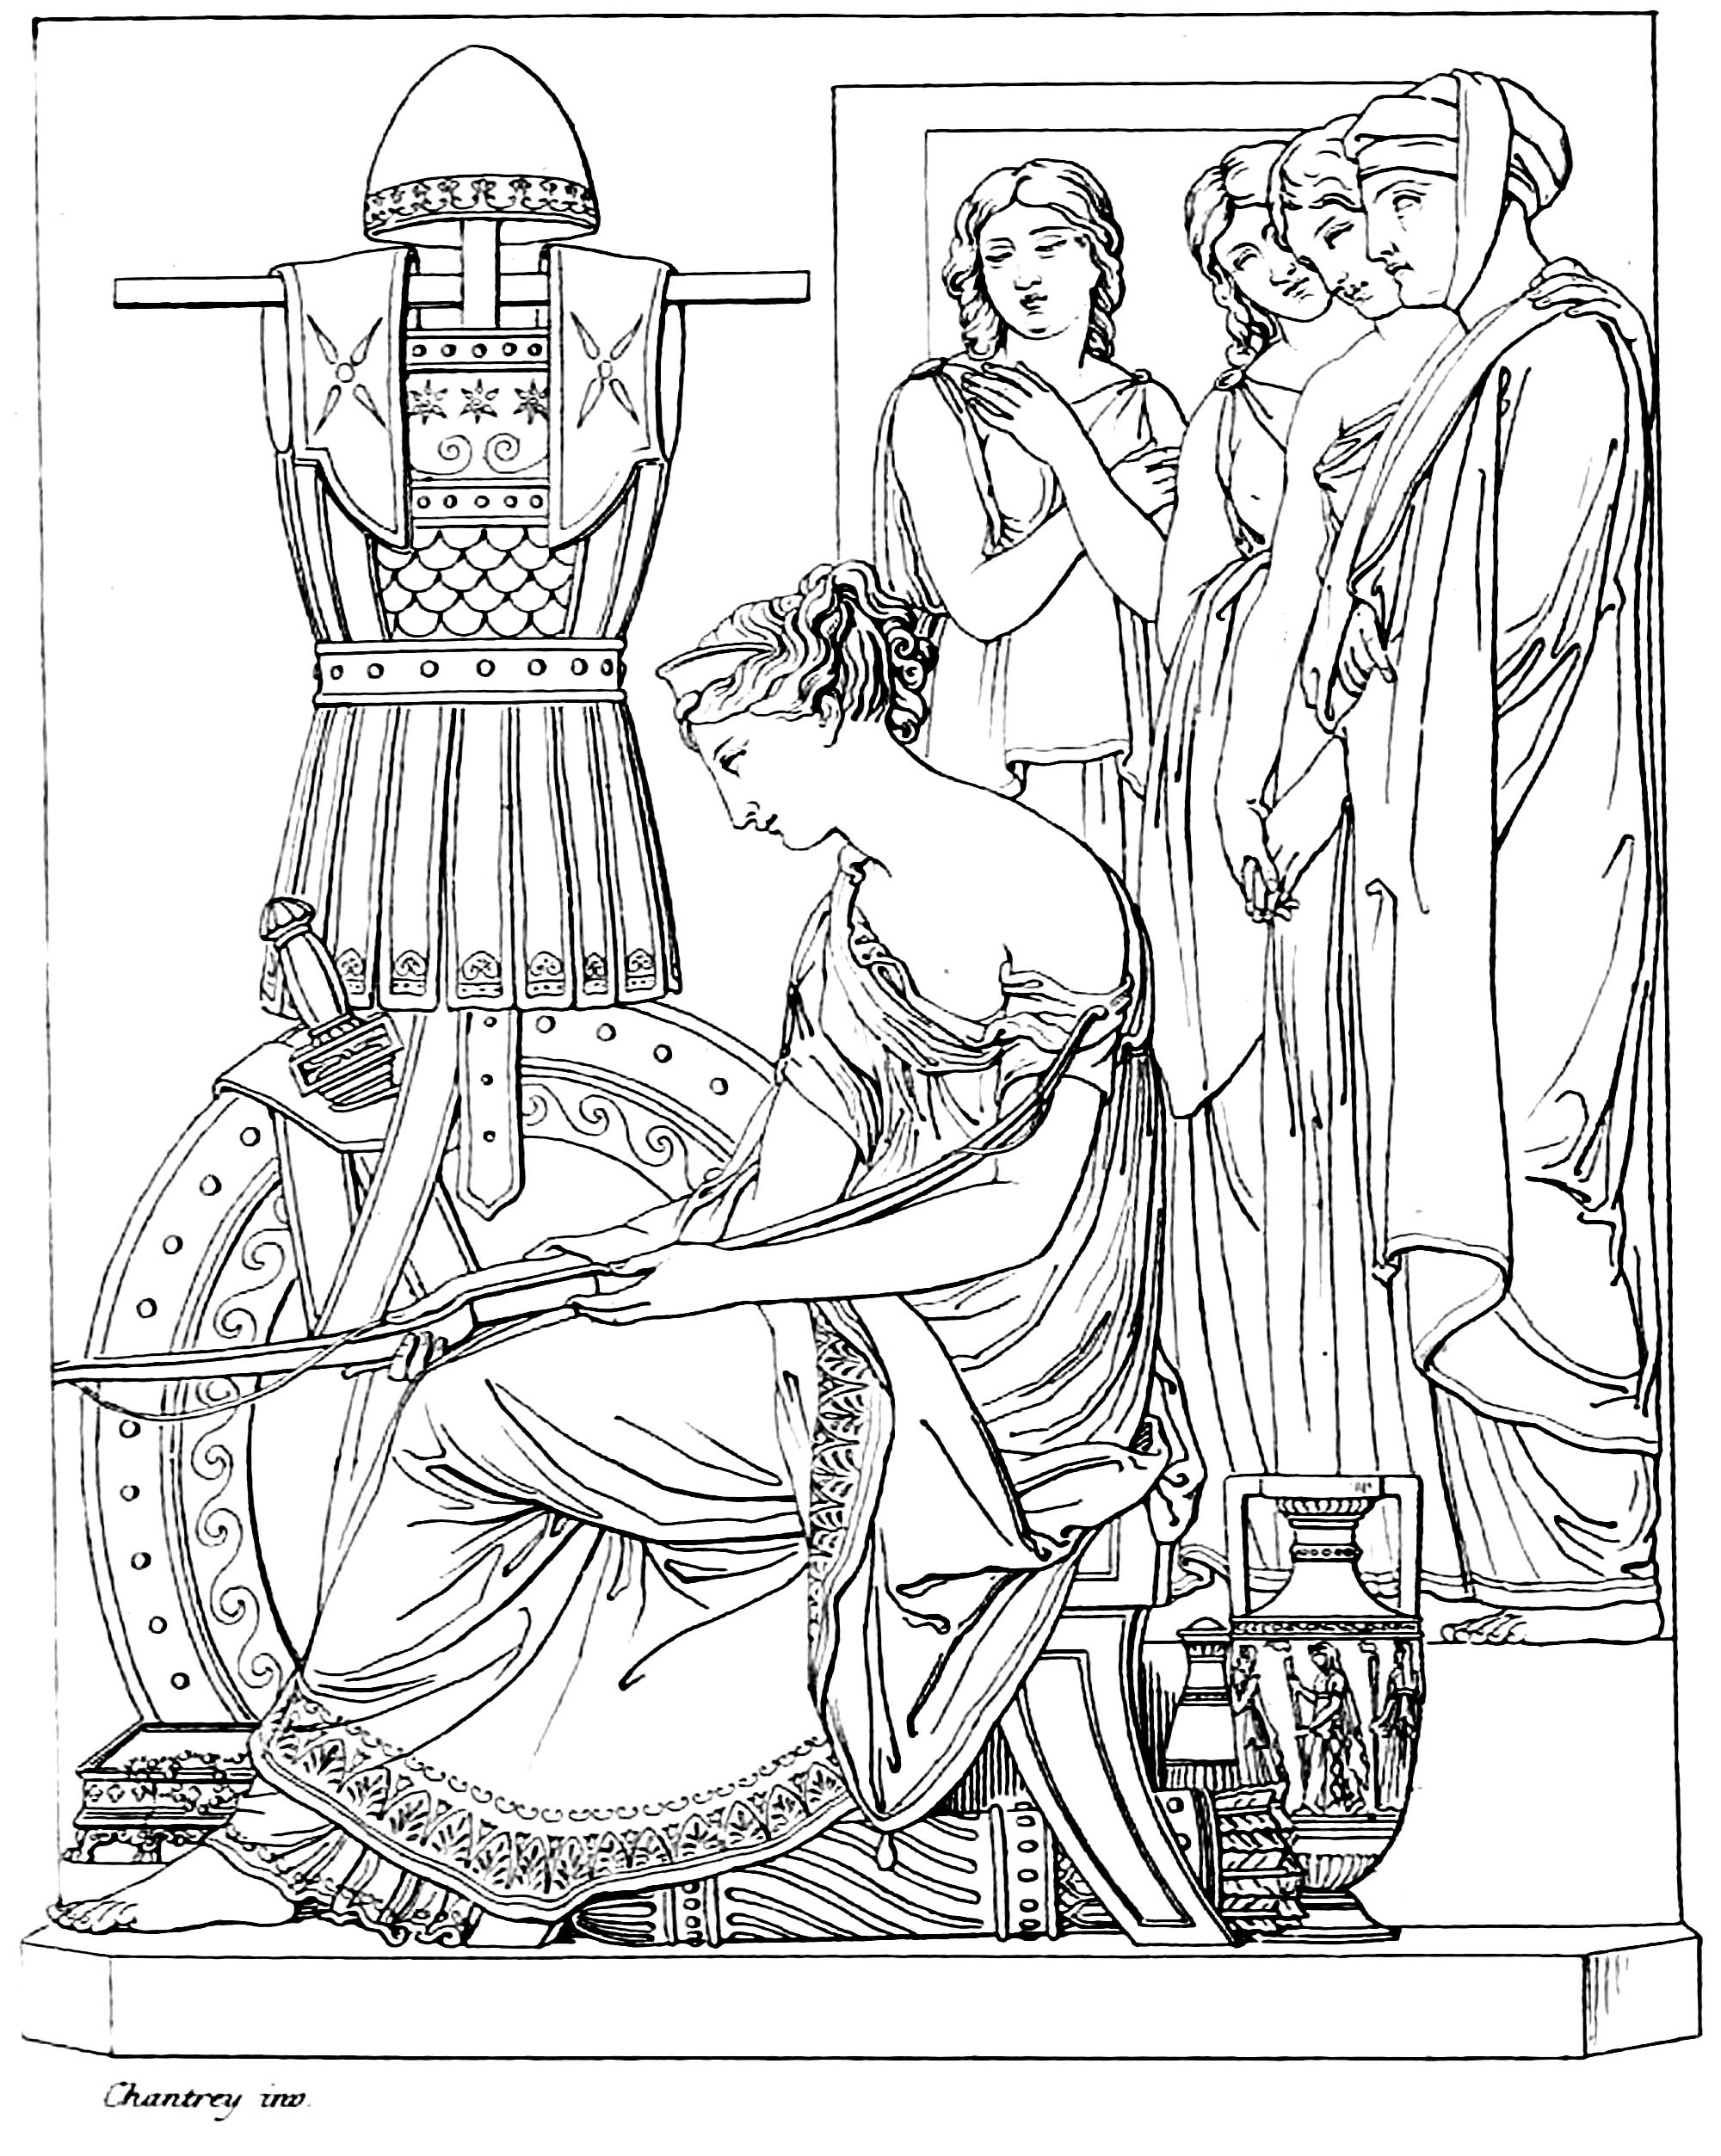 Coloring page adapted from 'Penelope sitting with Odusseus's armo', by Francis Chantrey